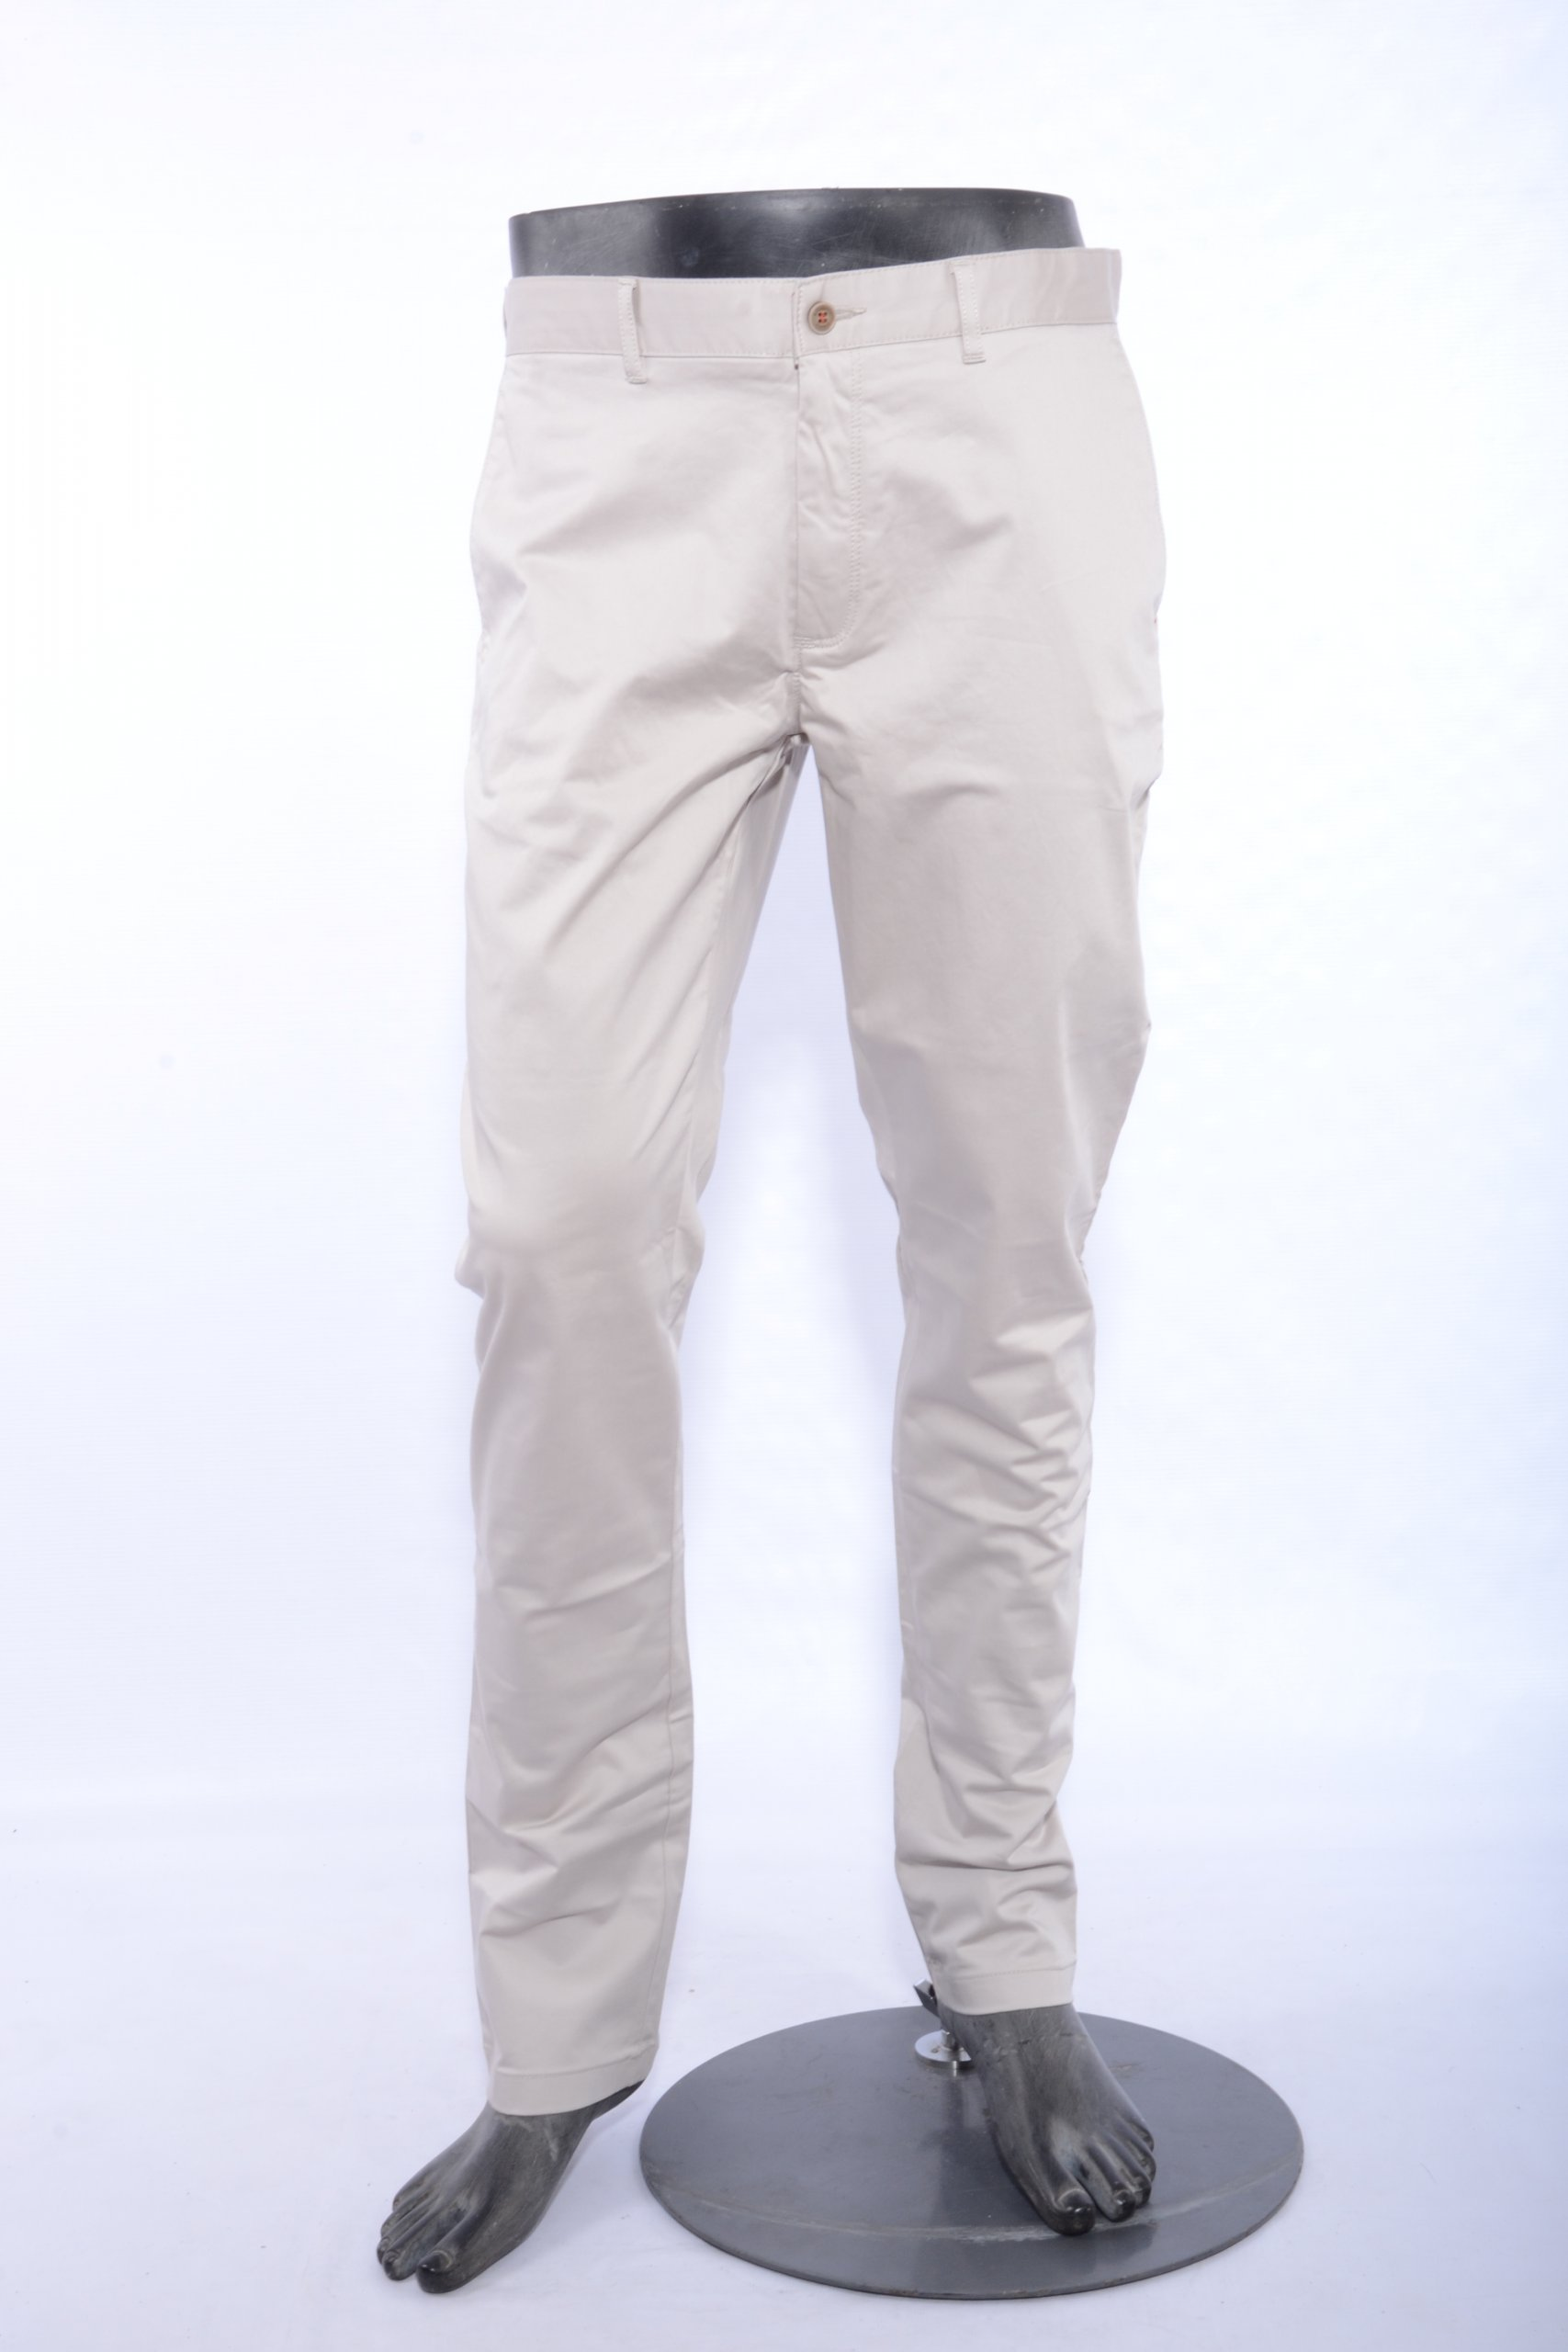 Brown Coloured Trouser by Black Berry